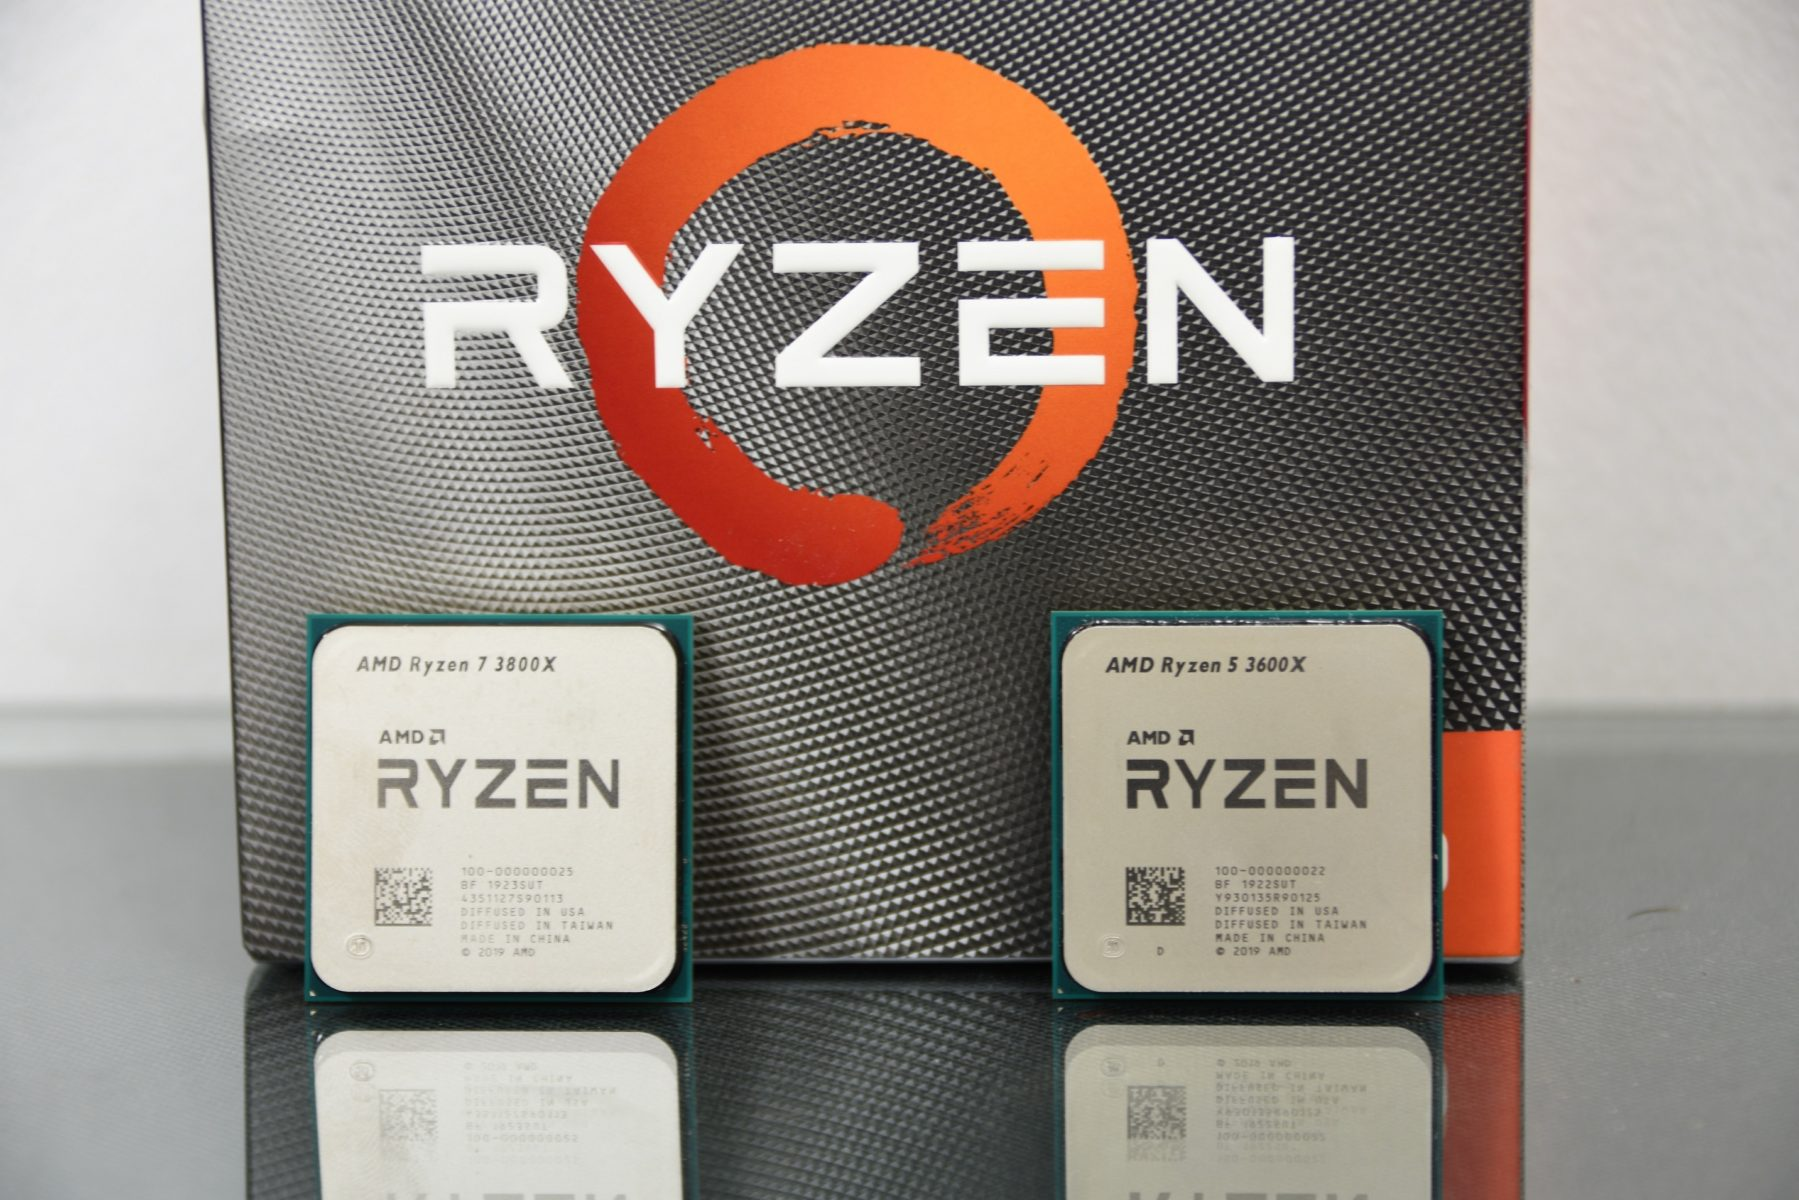 Overview Ryzen 7 3800x And Ryzen 5 3600x